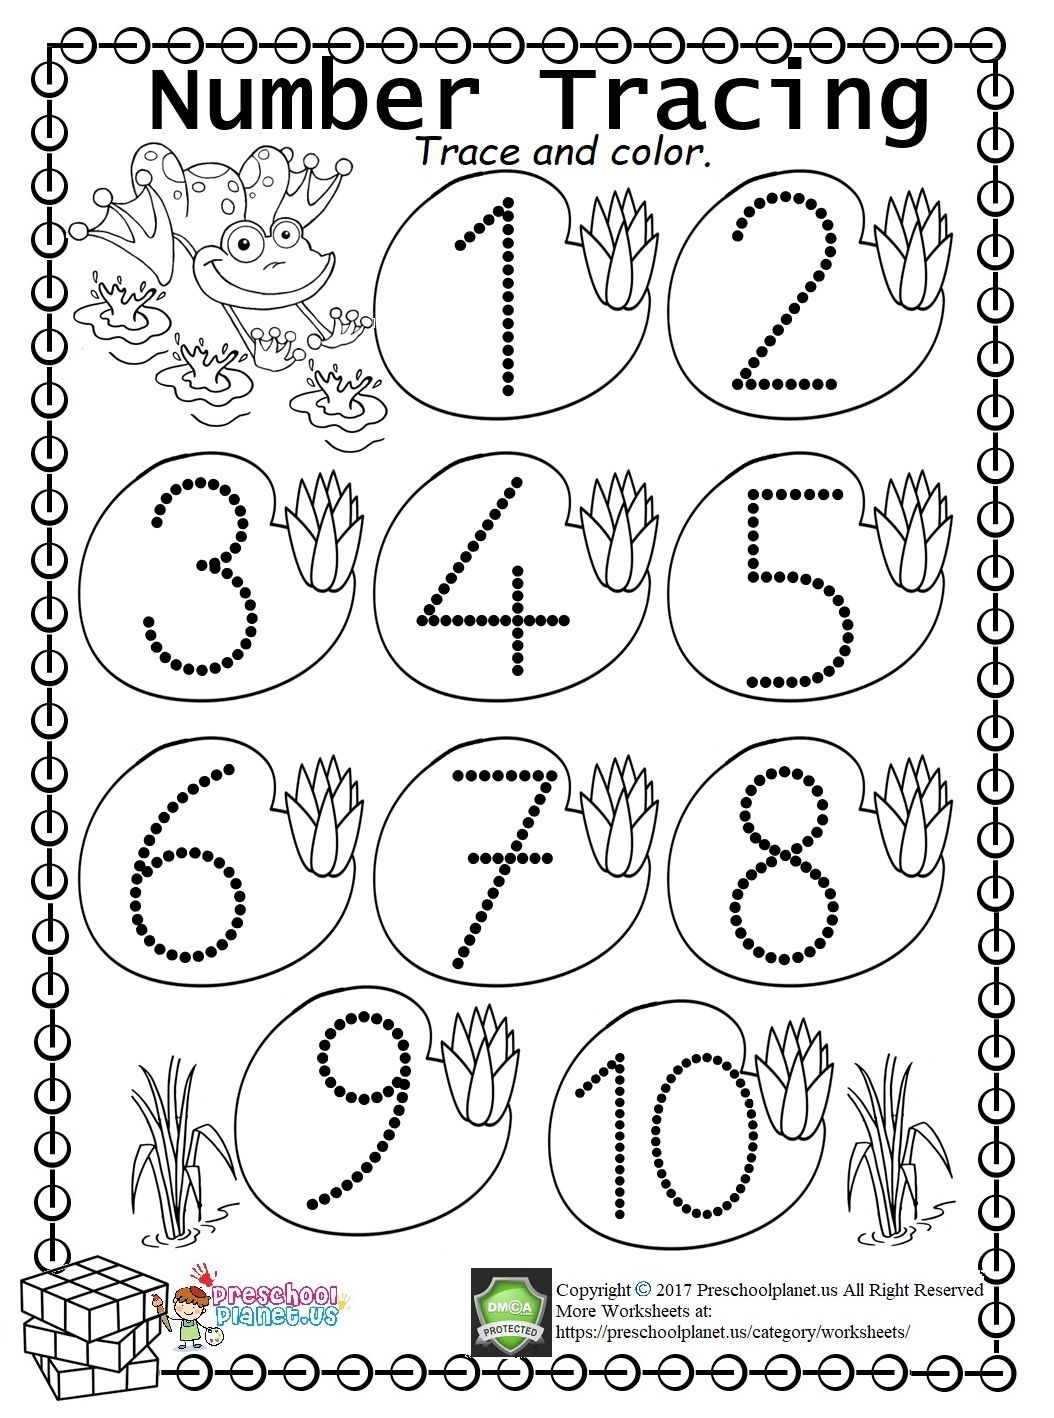 Easy Number Trace Worksheet (1-10) | Number tracing ...